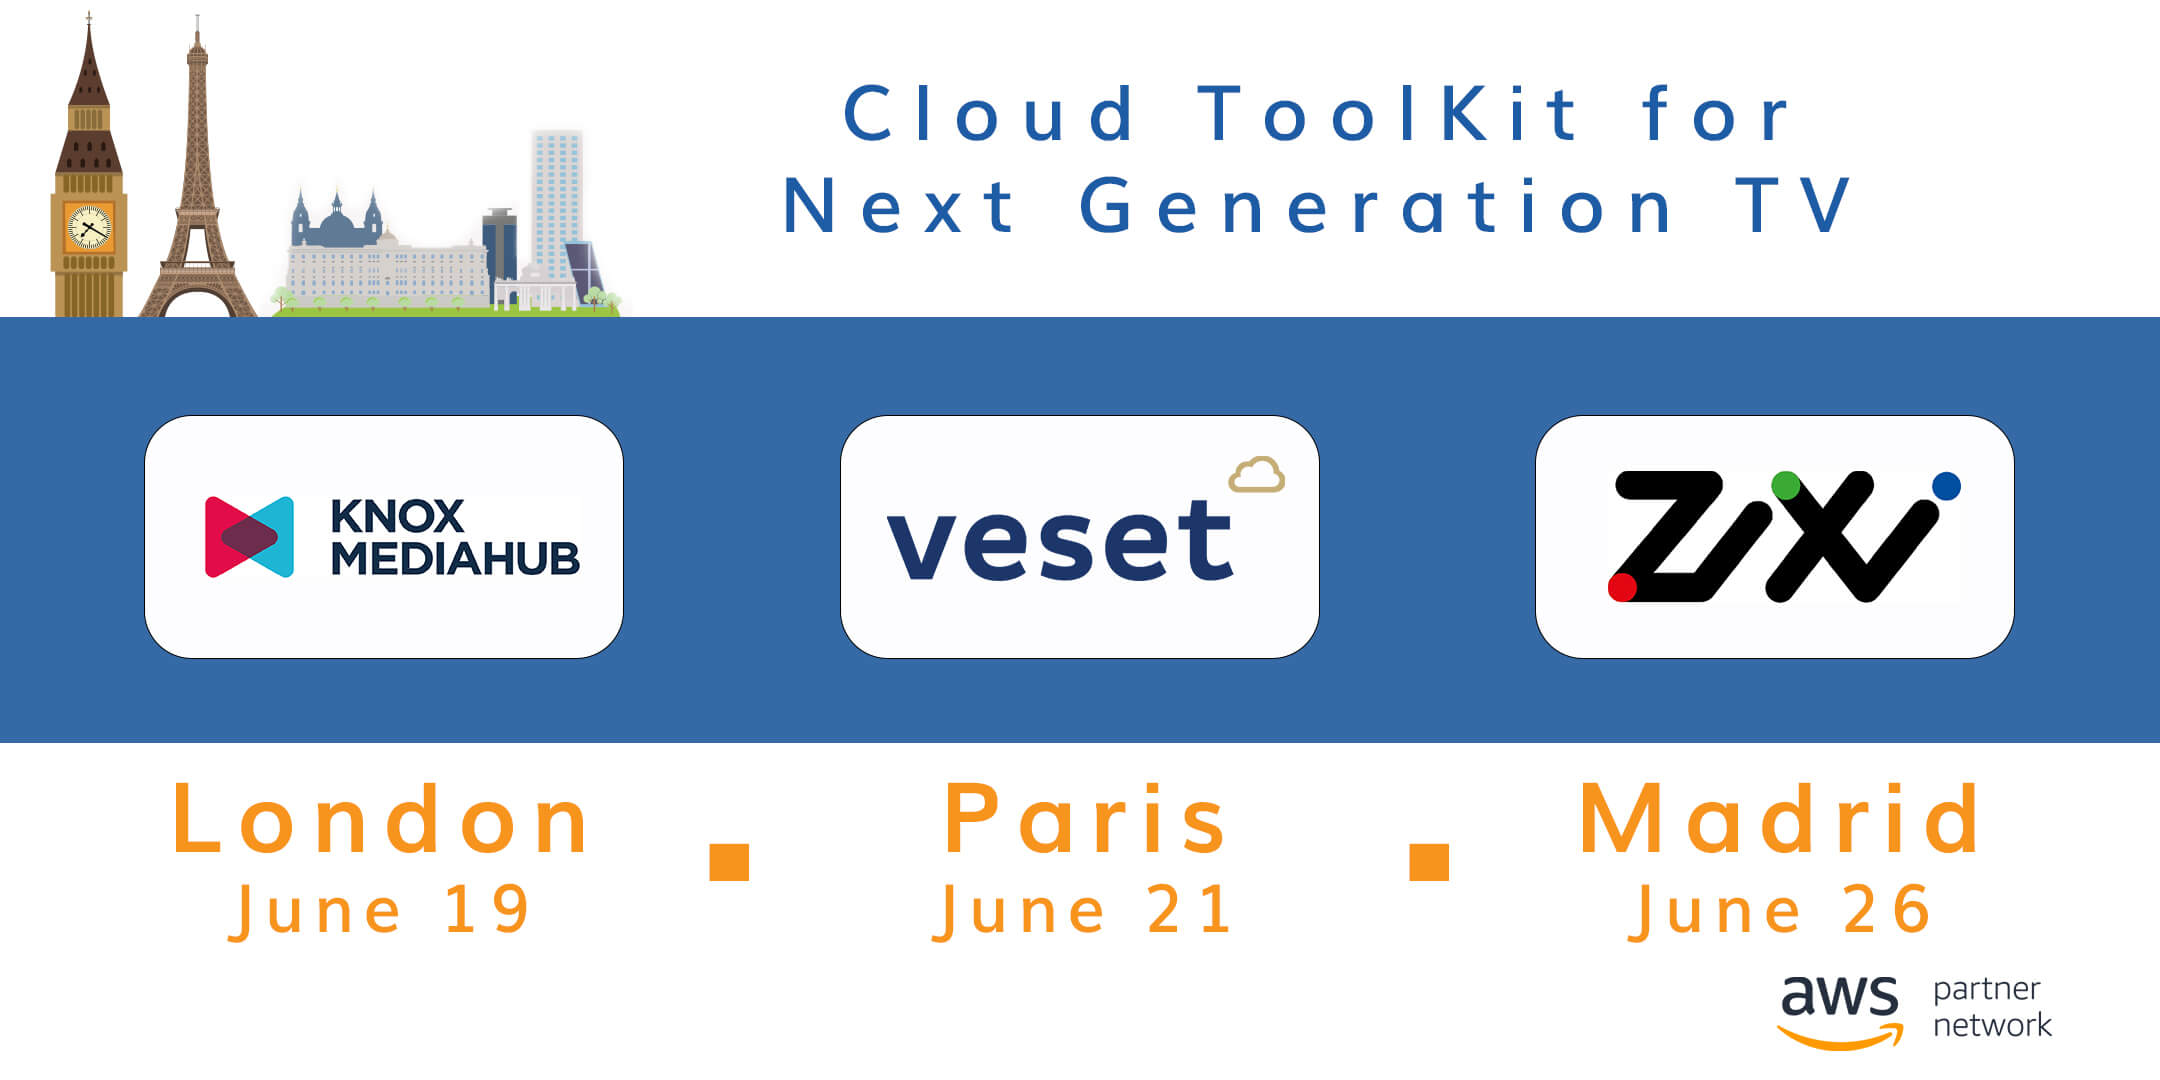 The Cloud Toolkit for Next Generation TV